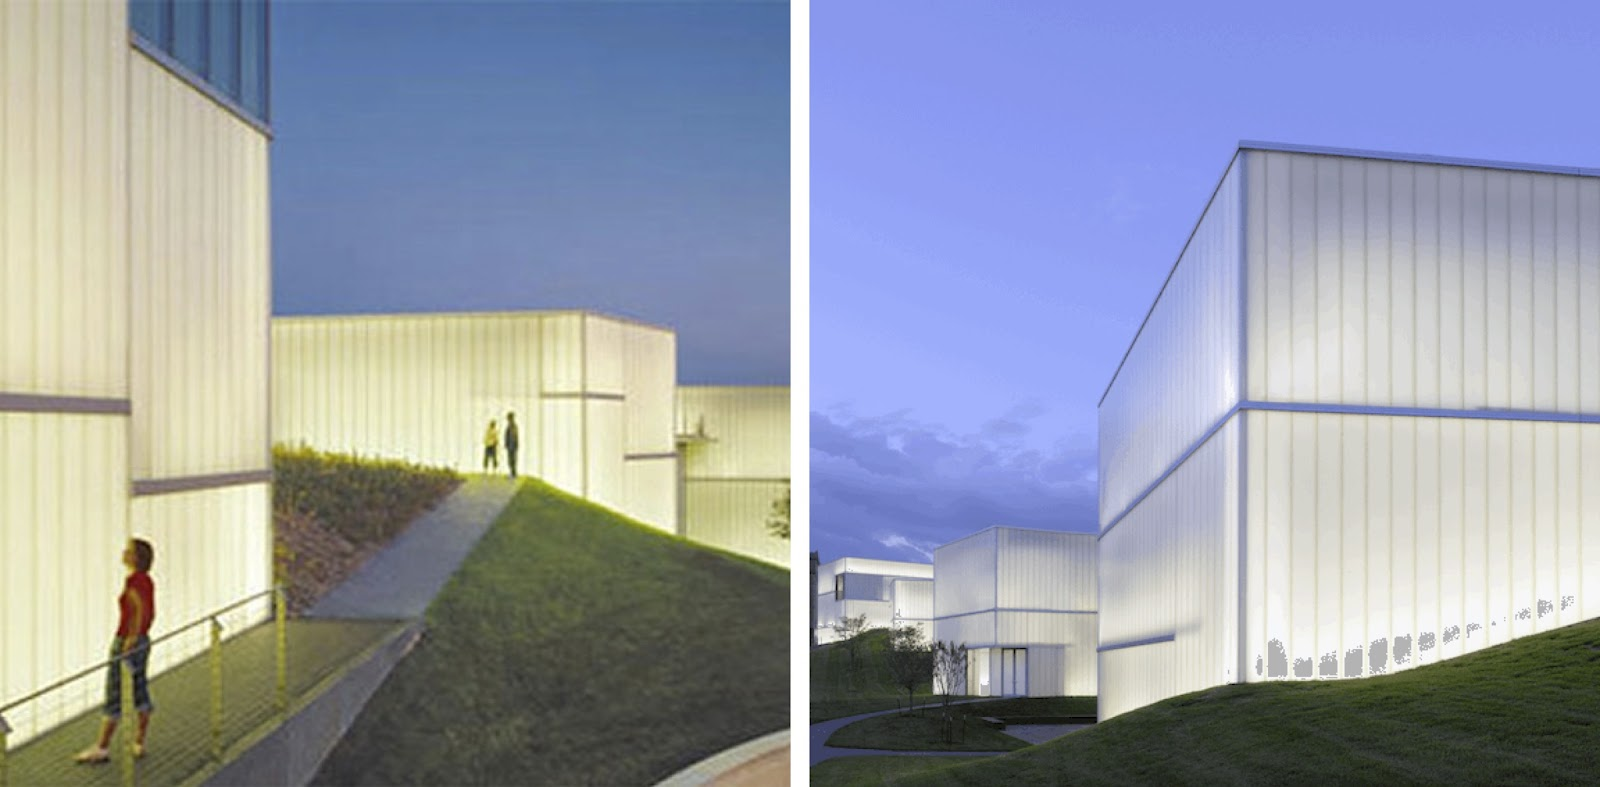 steven holl Steven holl architects: design excellence and green innovationsteven holl architects (sha) is a 40-person innovative architecture and urban design office wor.